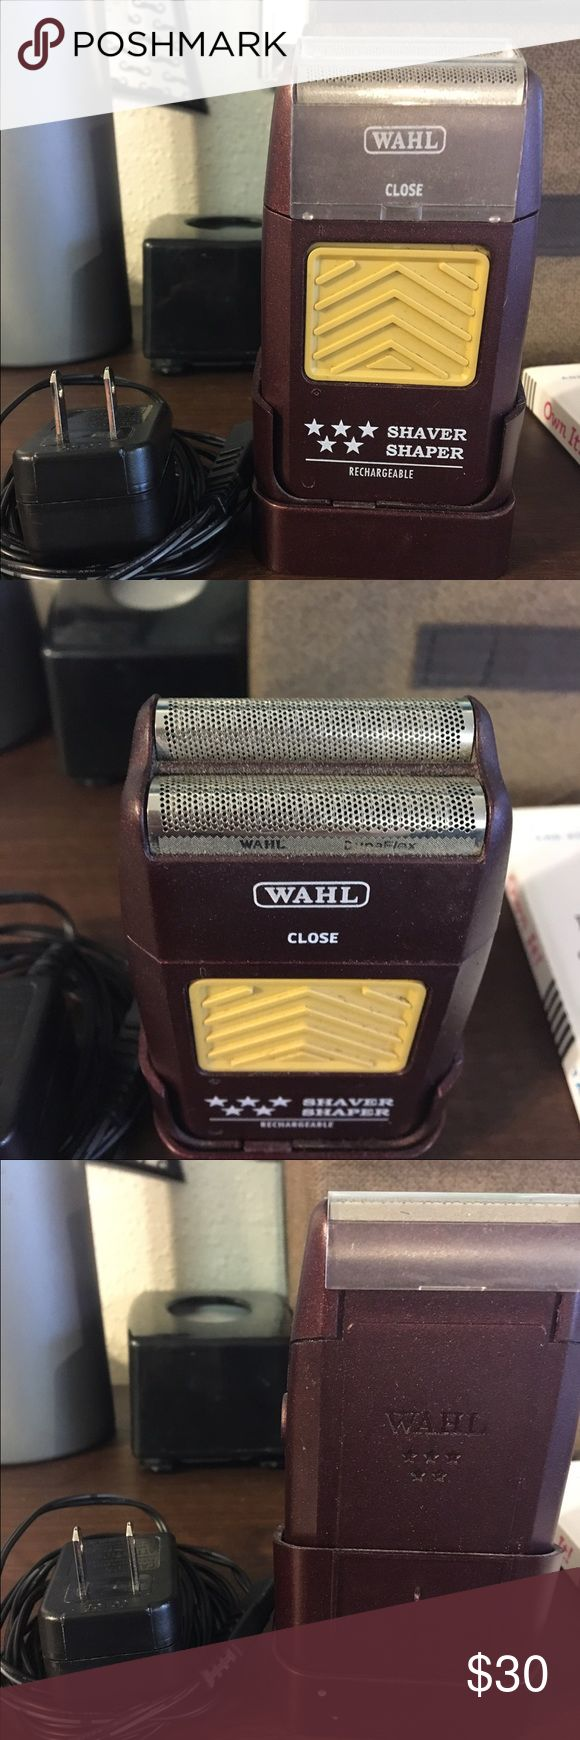 Wahl 5 star face shaver / electric shaver This is a wahl professional brand shaver. It is used for face shaving or head shaving and cuts super close leaving a baby smooth result. Hair must be less than 1/8th long to get best results. Good for shaving faces as well as skin fades for guys. Used by me for about a year at my job at my barber shop . Still works great, but doesn't hold charge for as long as I need. I bought a different brand of shaver and don't have use for this one anymore. wahl…